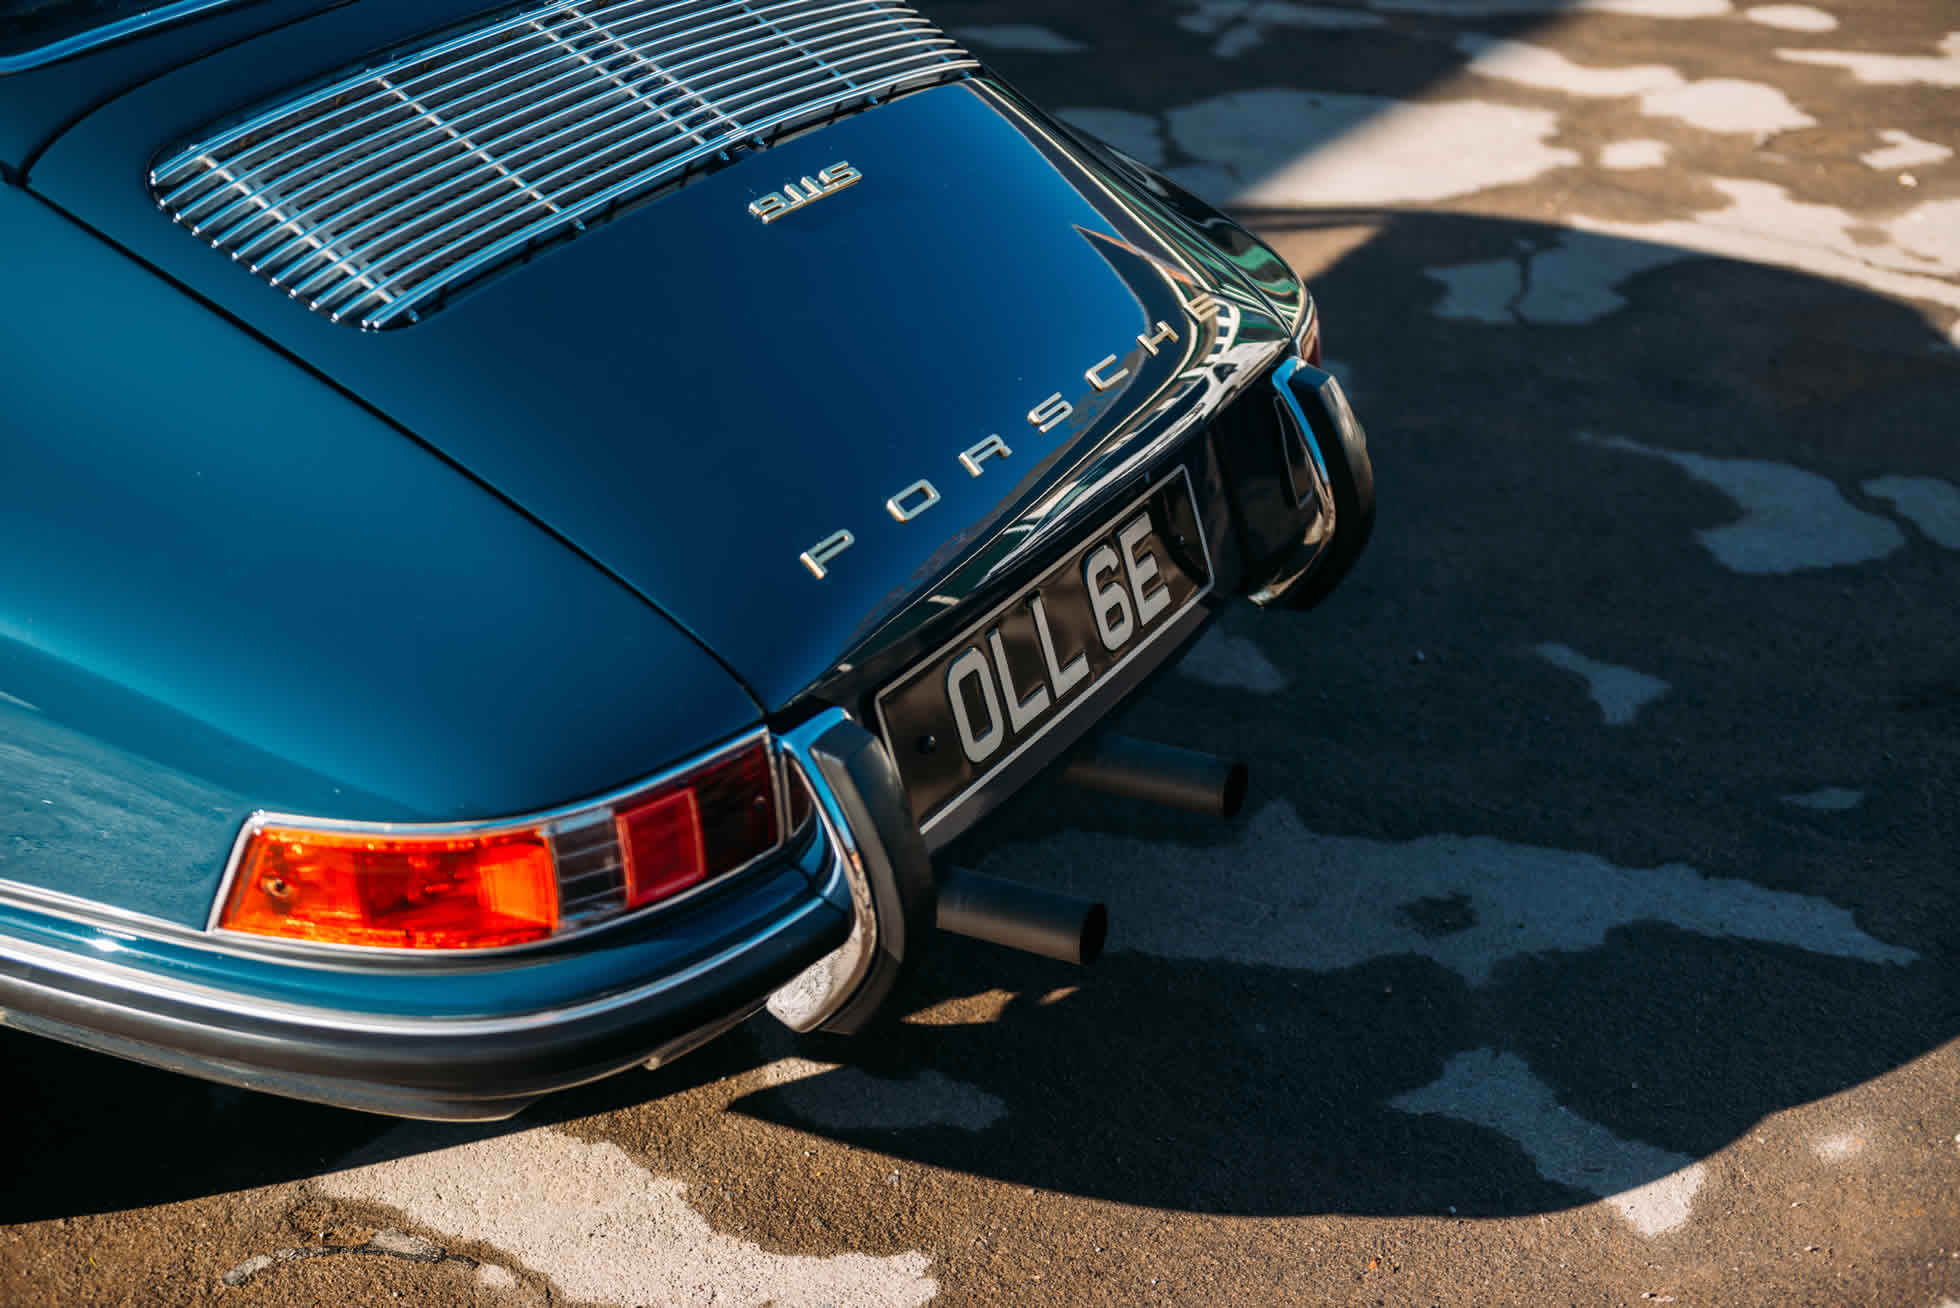 For Sale 1967 Porsche 911 S rear view